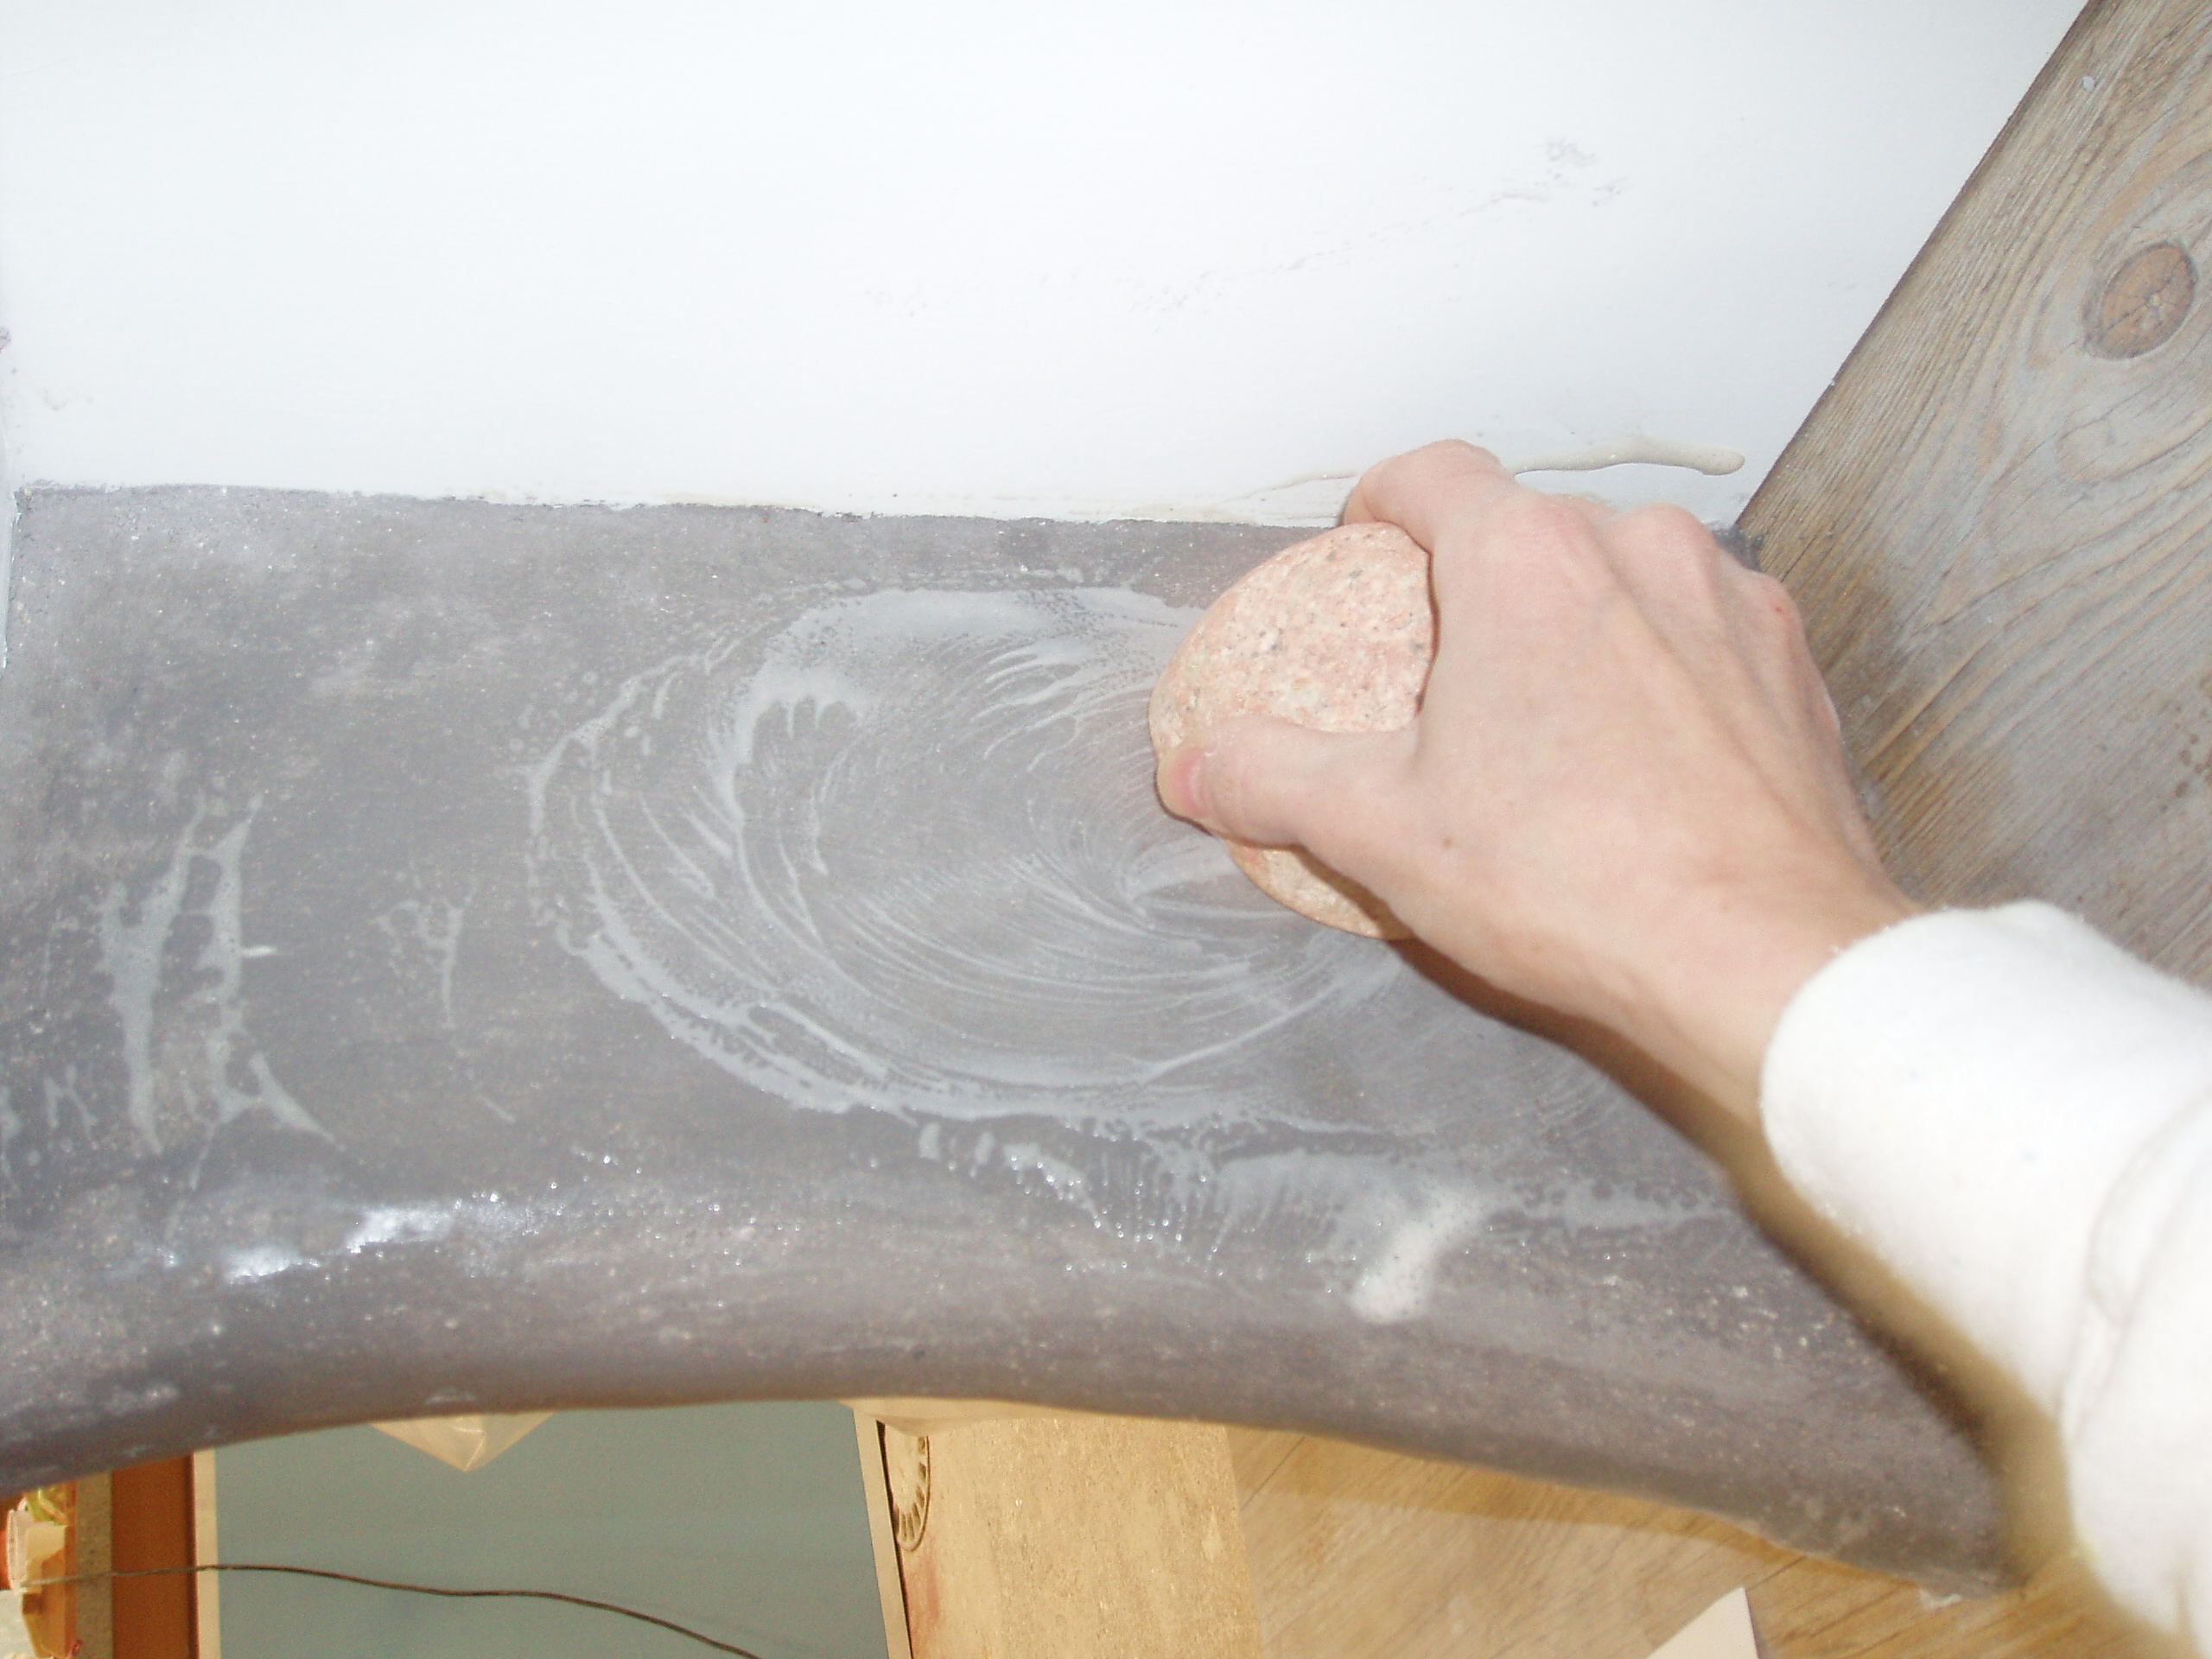 applying soapy solution